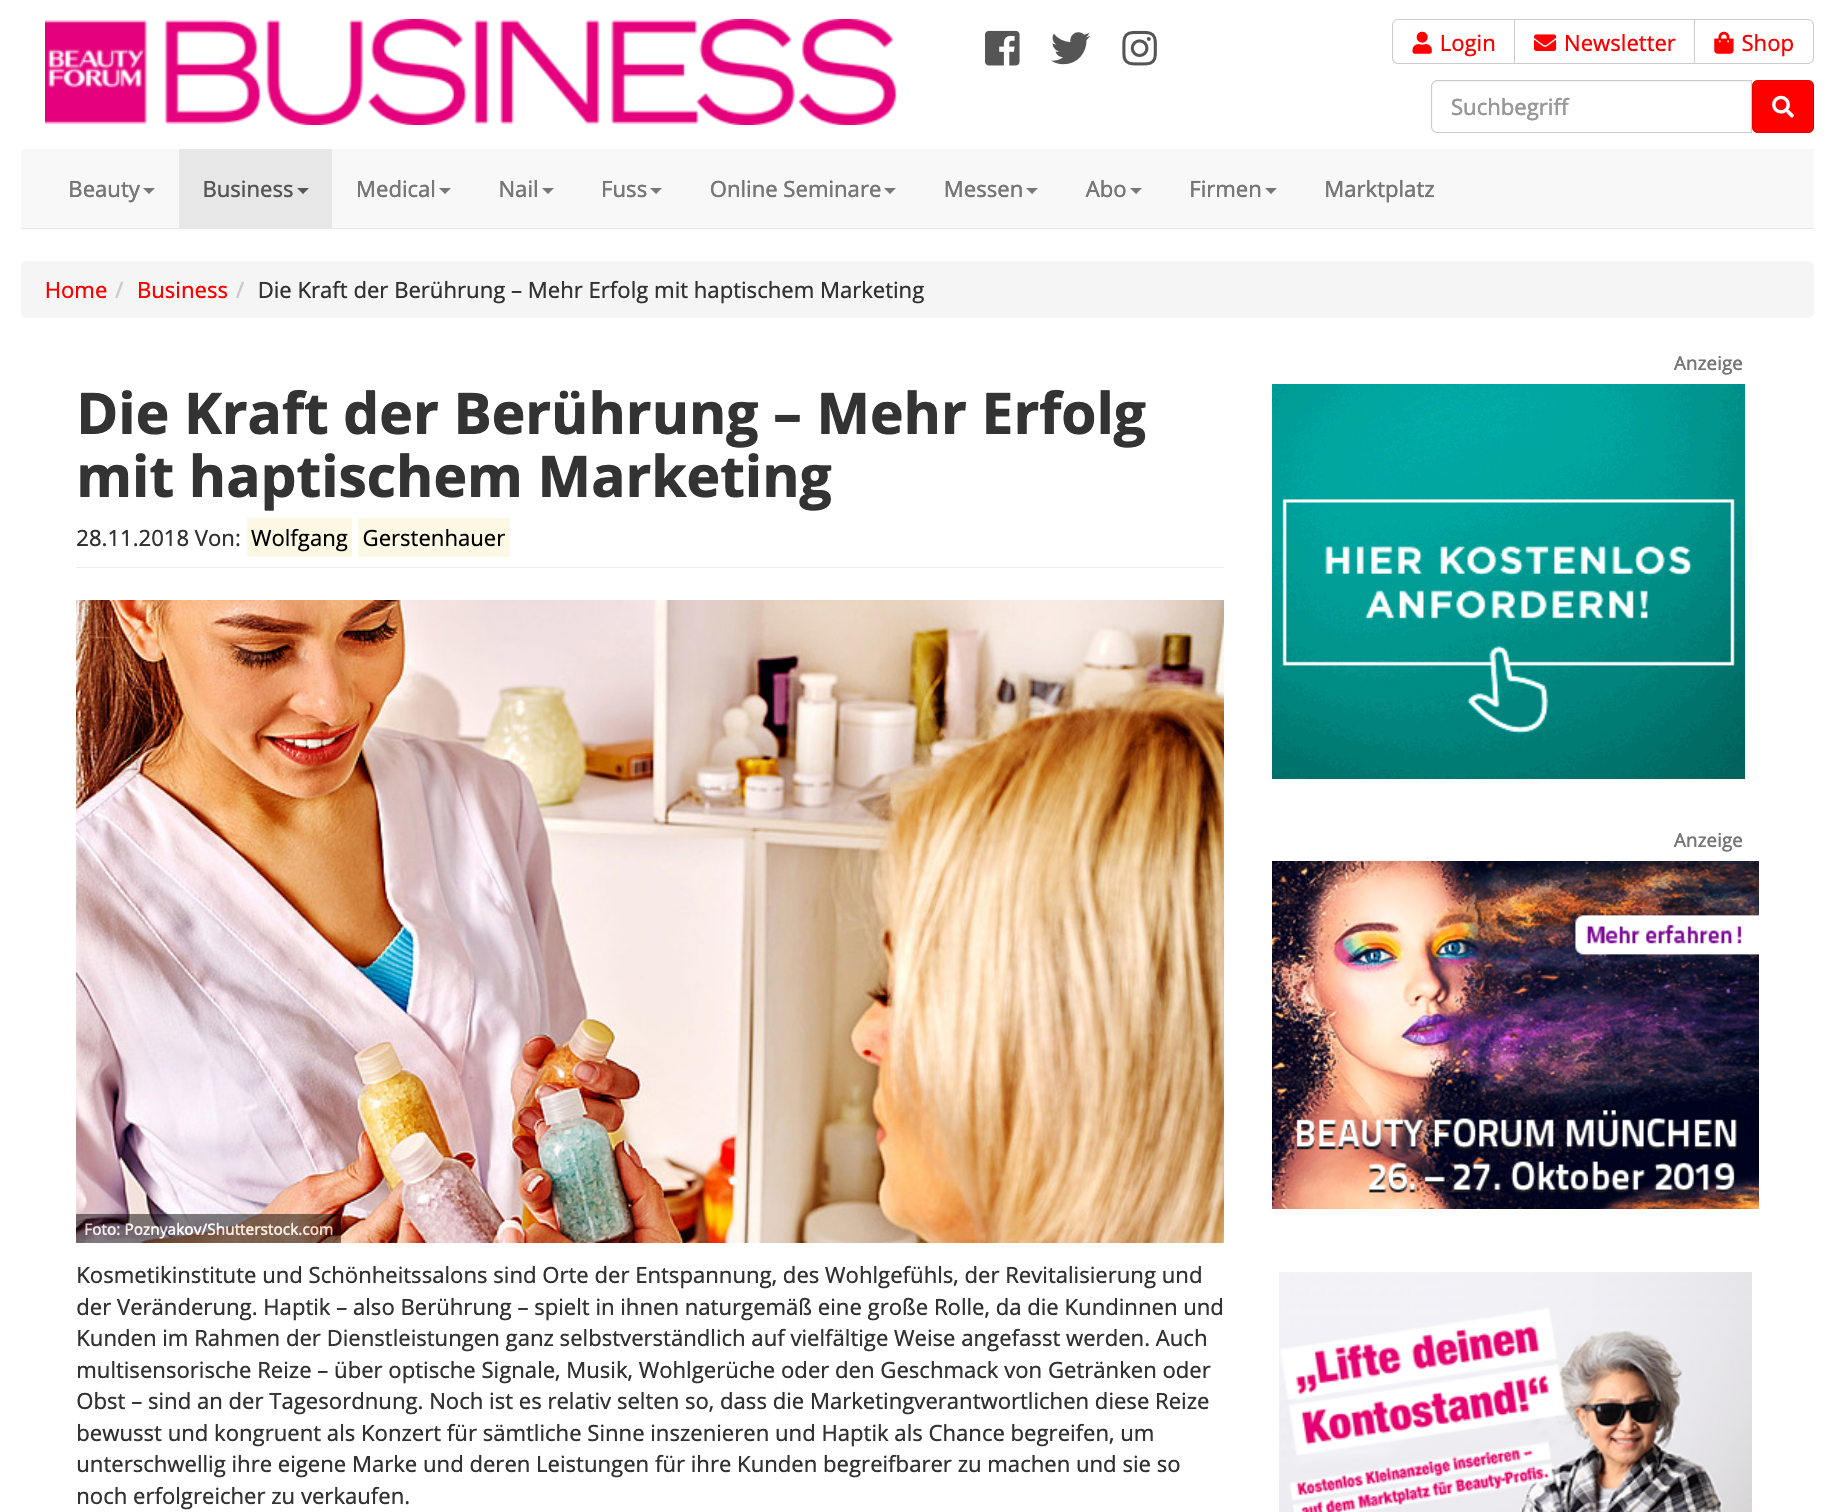 Fachartikel über Haptisches Marketing in der Kosmetikbranche